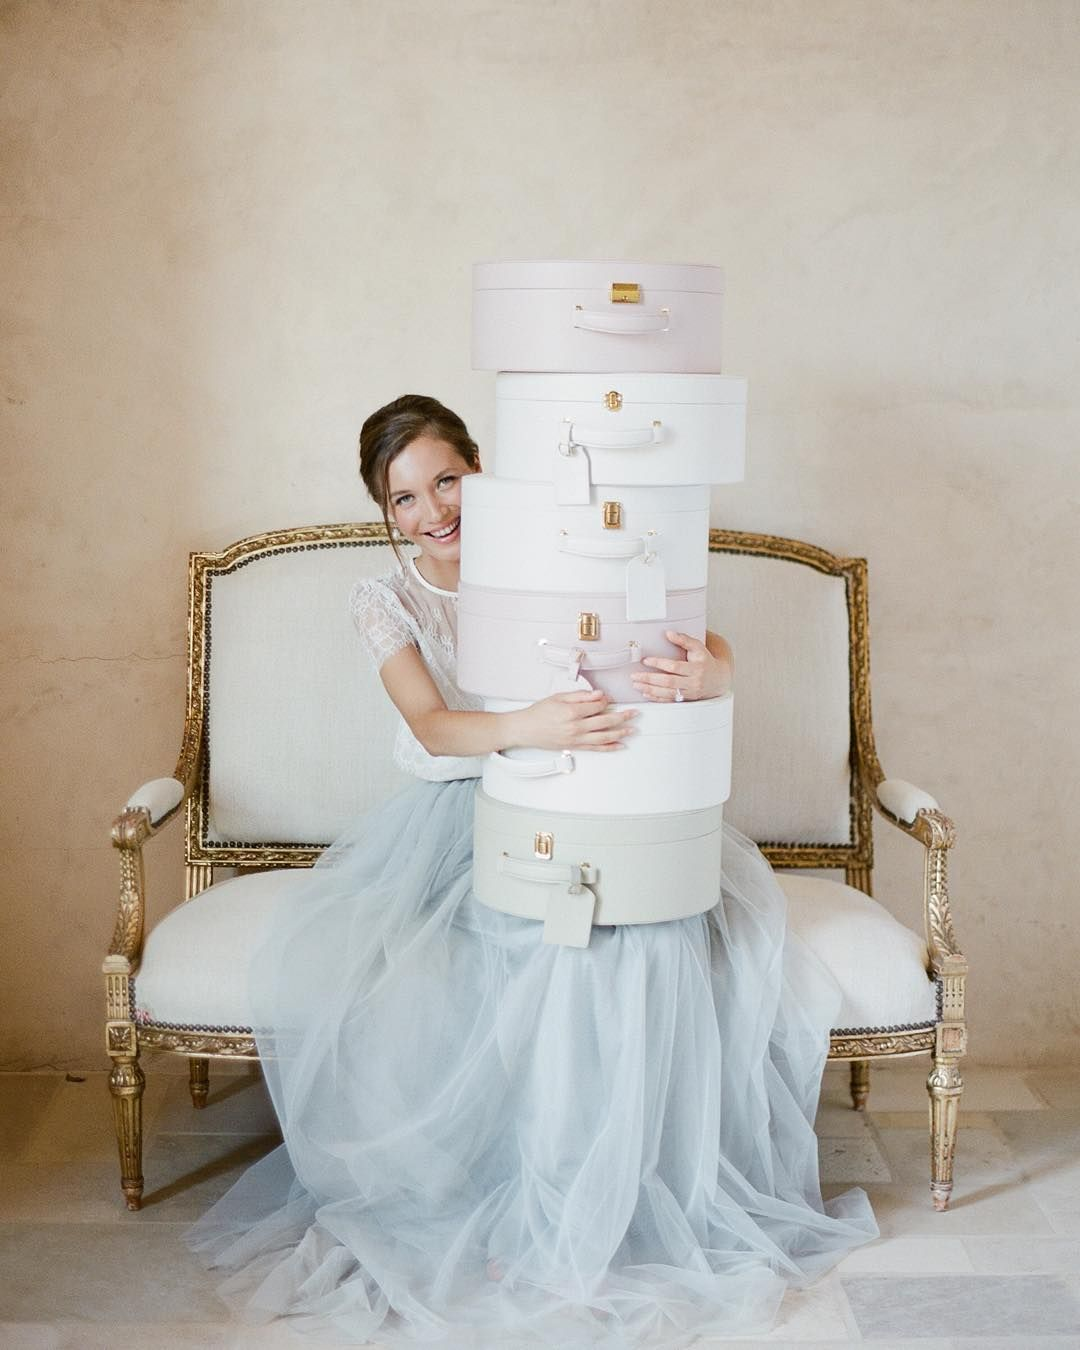 Your wedding essentials should be organized and protected. The monogrammed hatboxes from @trousseauandco are designed with enough space for heels makeup toiletries jewels undergarments and all the rest of your precious heirlooms. For updates and to sign up for our waitlist visit our website: http://ift.tt/1LFvD6L Photo by @josevilla gown @alexandragrecco sofa @foundrentals hair and makeup @teamhairandmakeup #trousseauandco #monogrammedhatbox by joyproctor